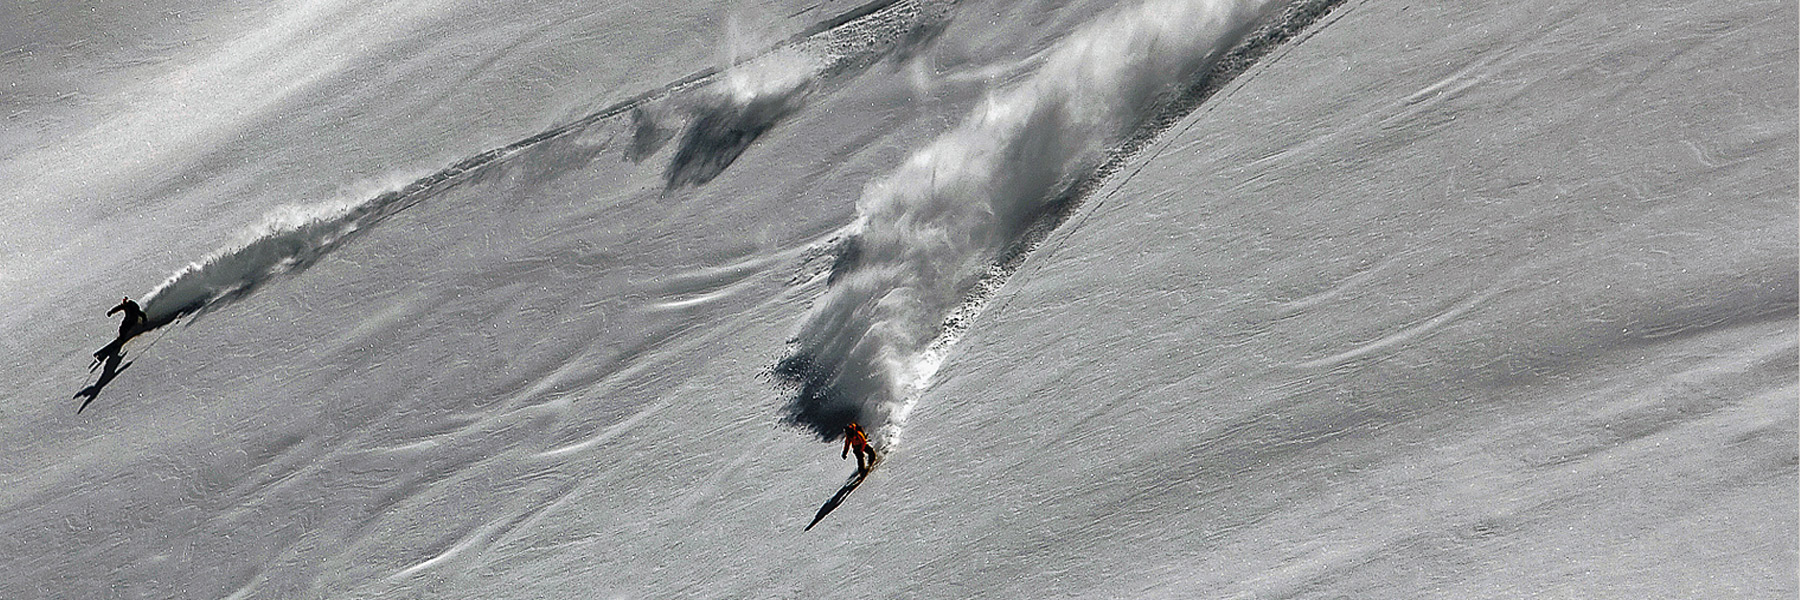 skiing-slide4